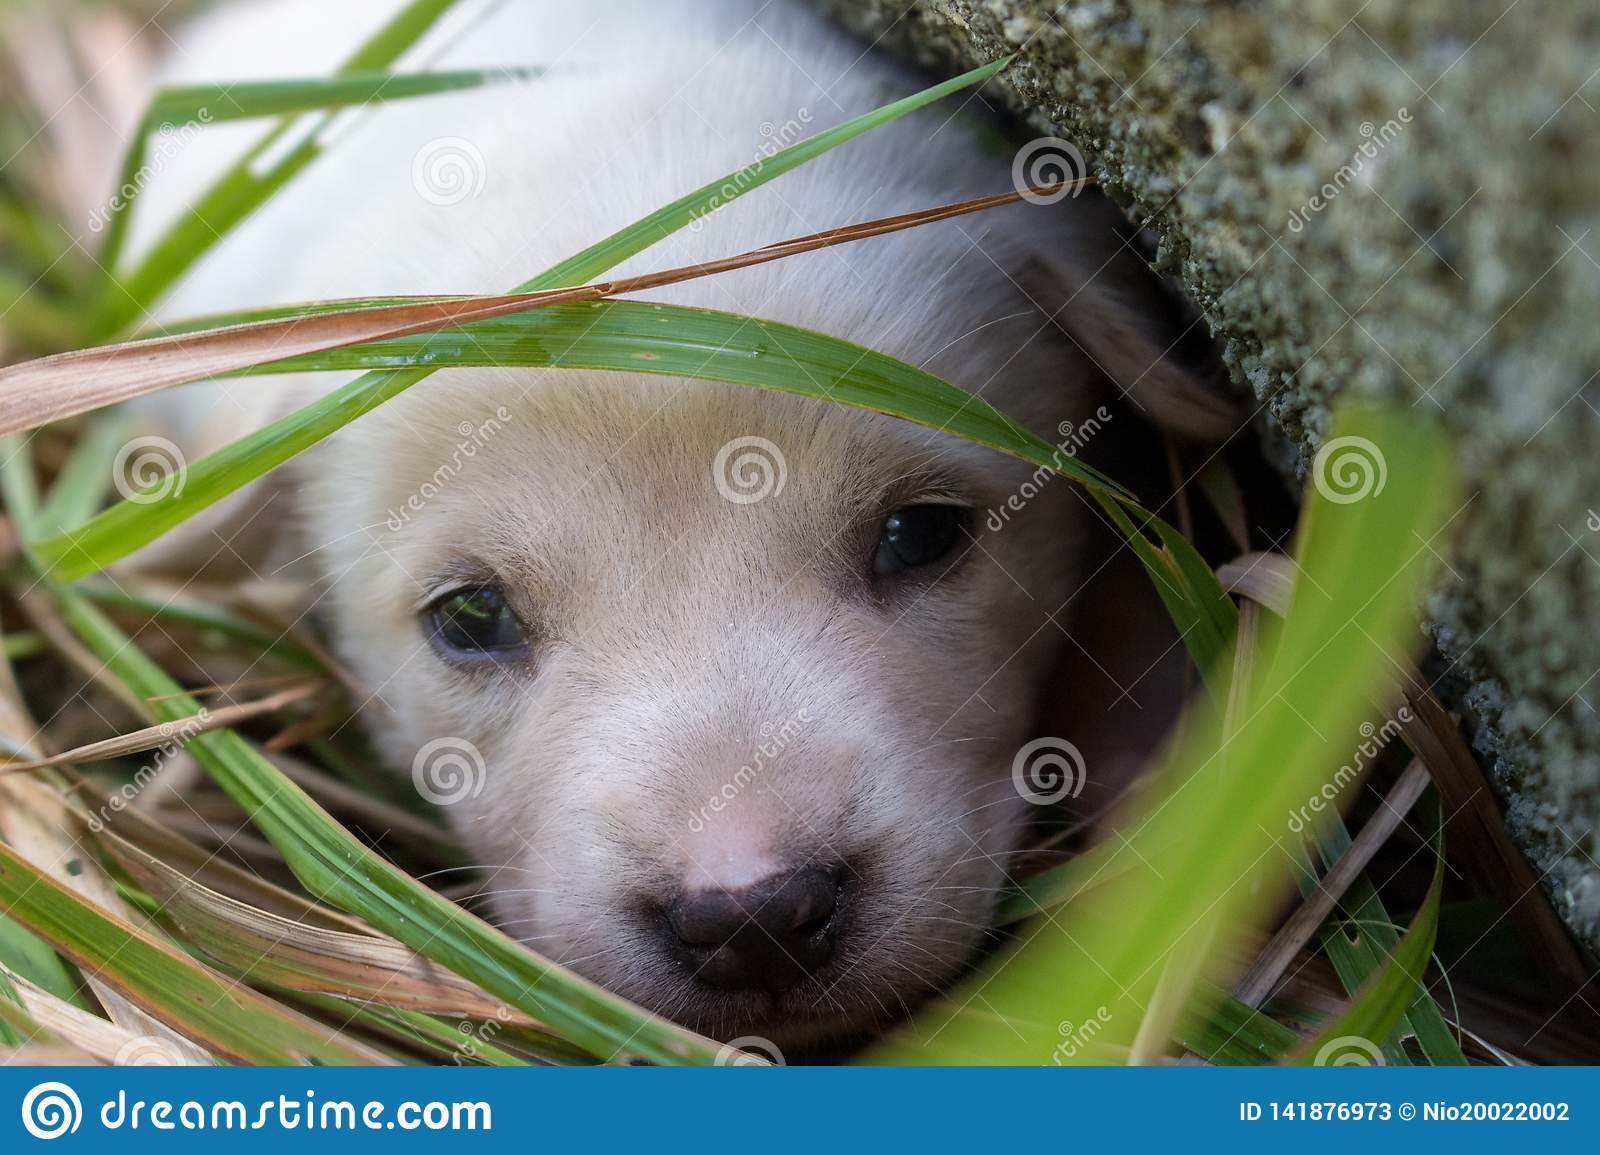 Sad White Puppy Lying In Grass Near Stone Cute Small Dog Looking At Camera Lovely Baby Dog Close Up Animal Care And Love Concep Stock Image Image Of Looking Close 141876973